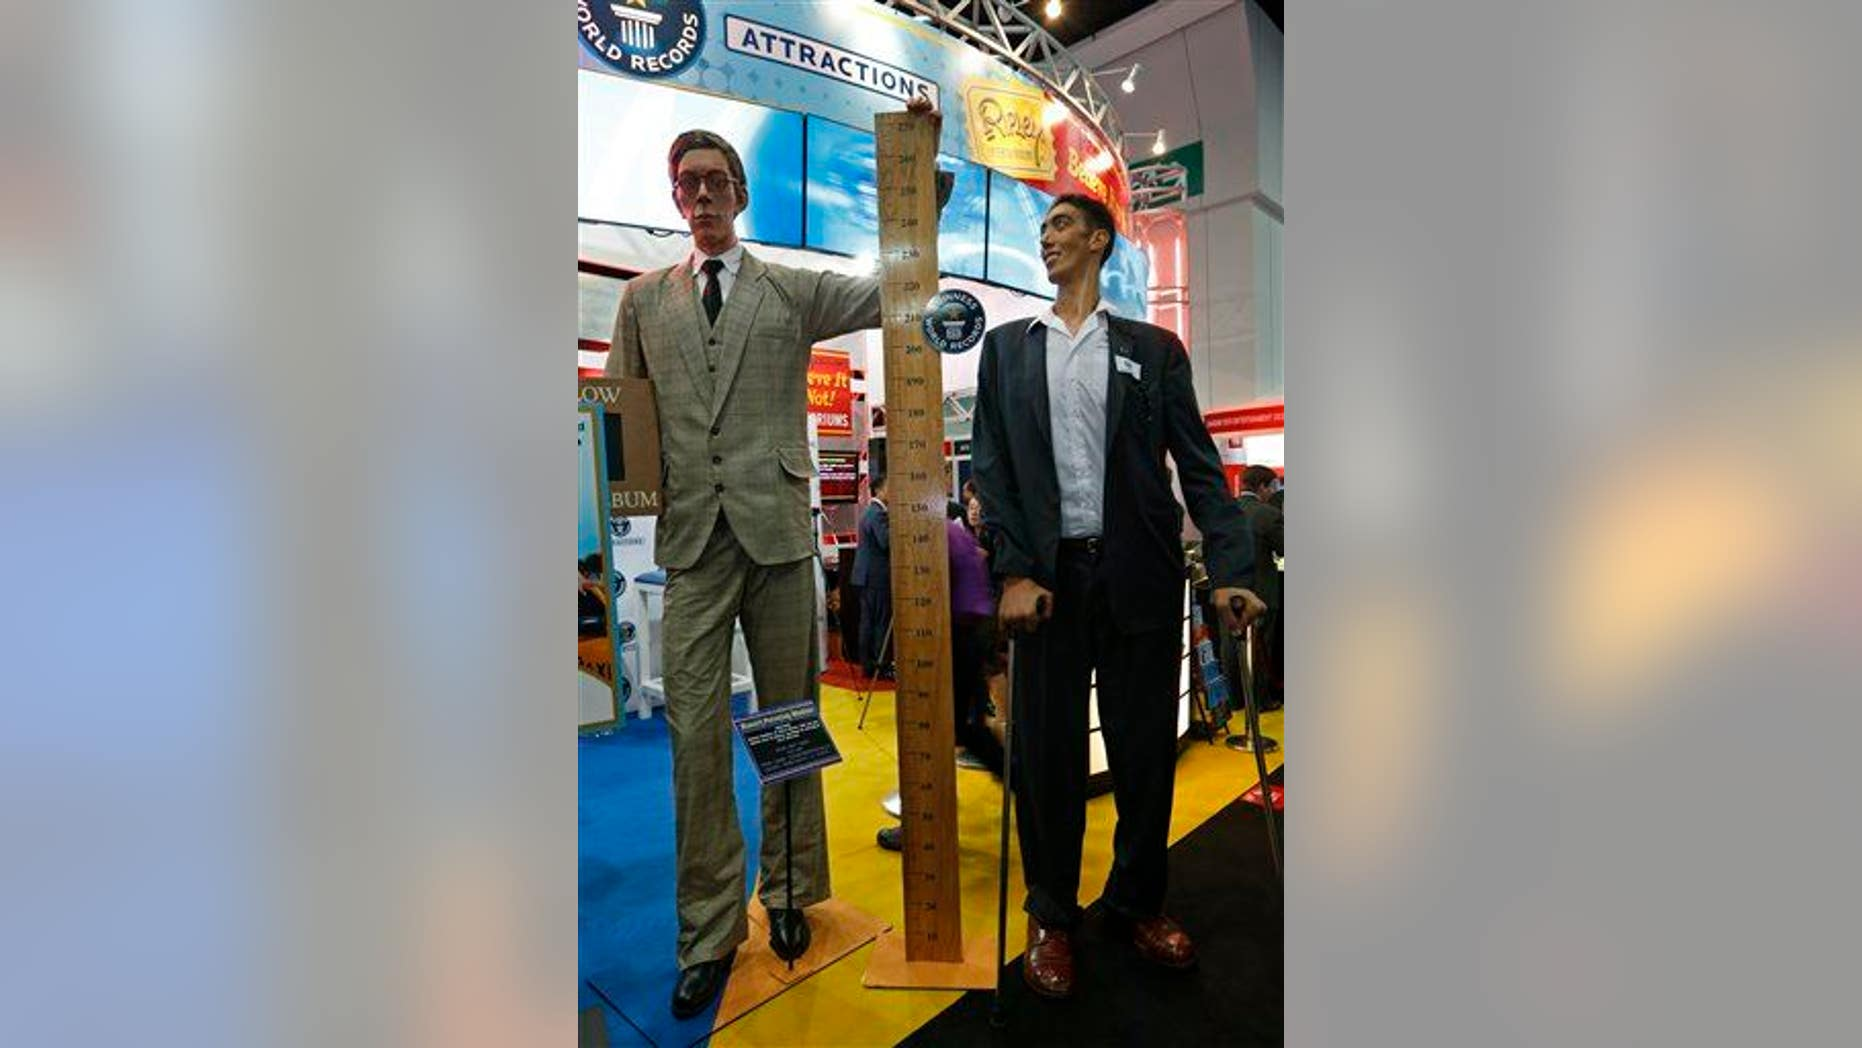 The world's tallest man, Sultan Kosen of Turkey, measuring 8 feet 3 inches, right, poses next to a figure of the tallest man in history, Robert Wadlow.